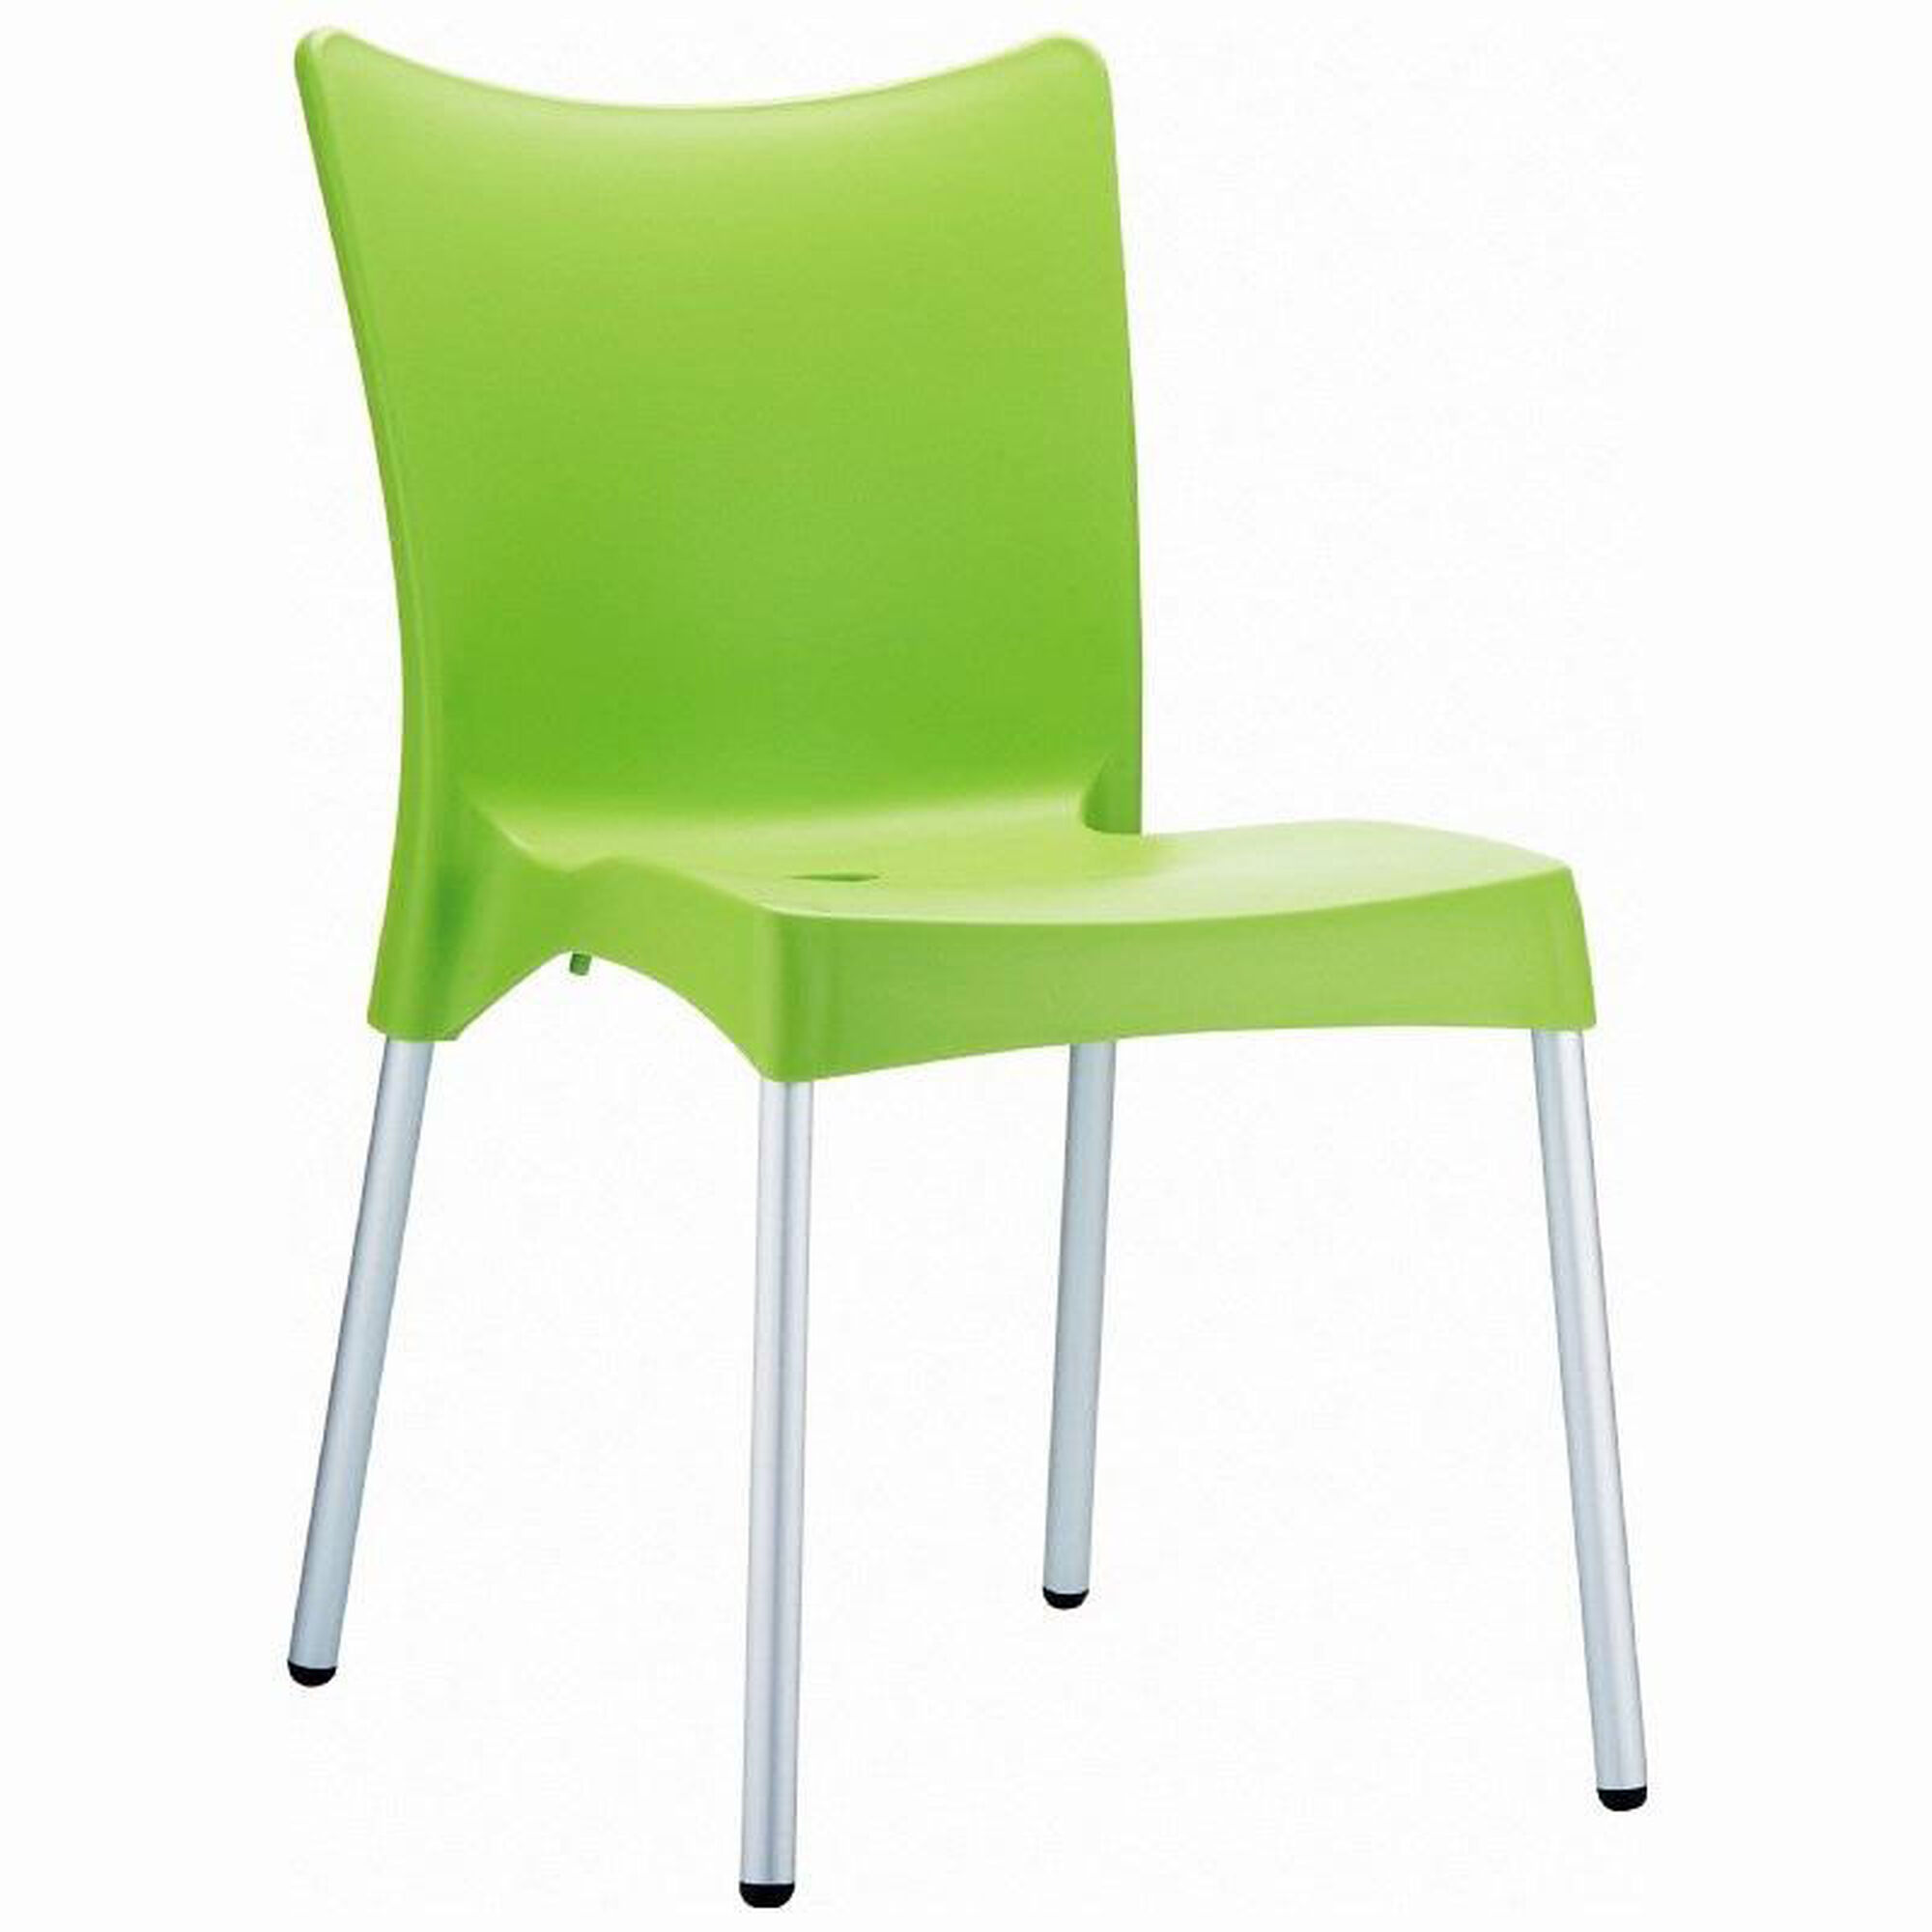 Prime Juliette Outdoor Resin Stackable Dining Chair With Aluminum Legs Apple Green Ncnpc Chair Design For Home Ncnpcorg